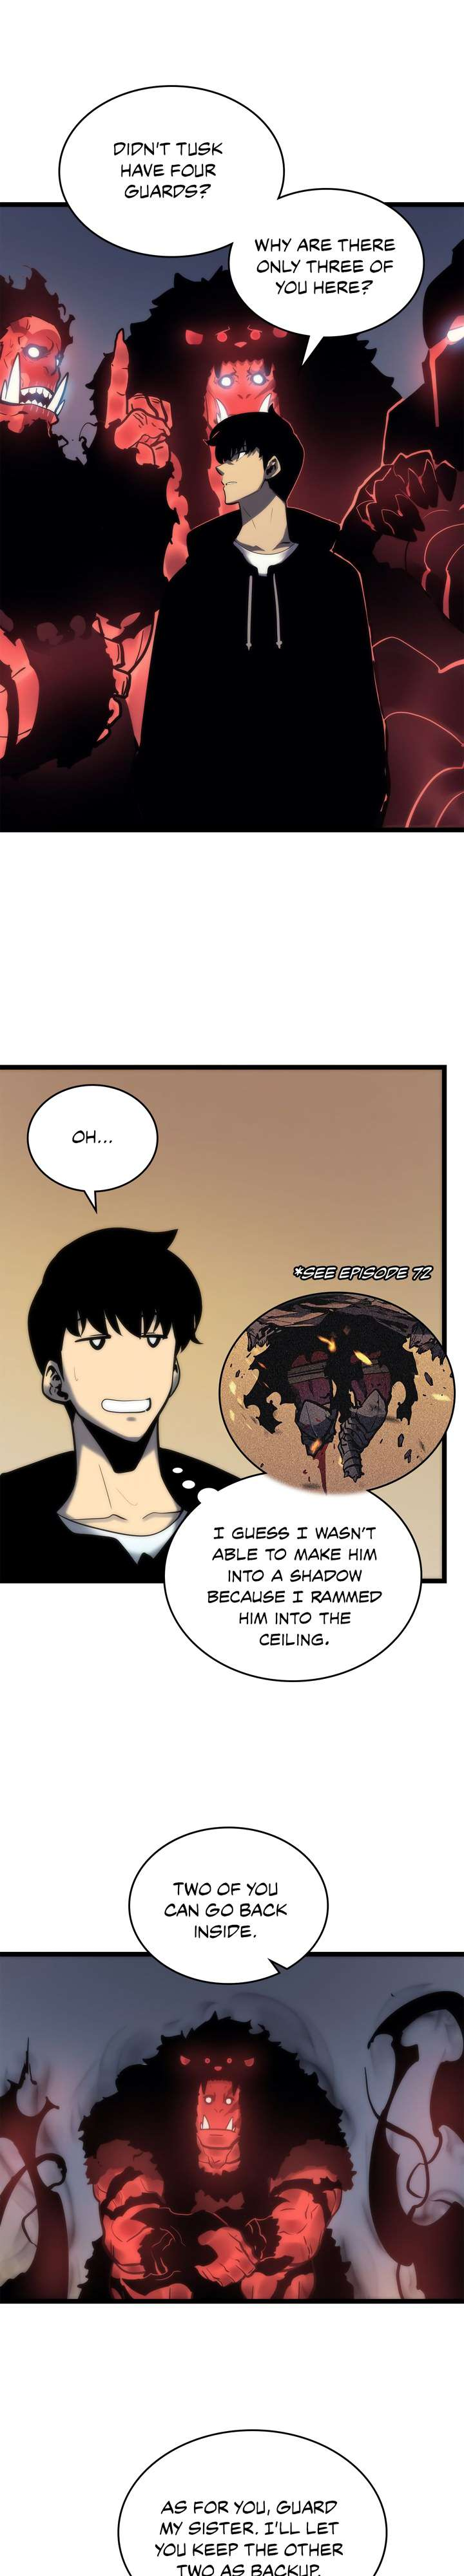 Solo Leveling Chapter 80 Page 3